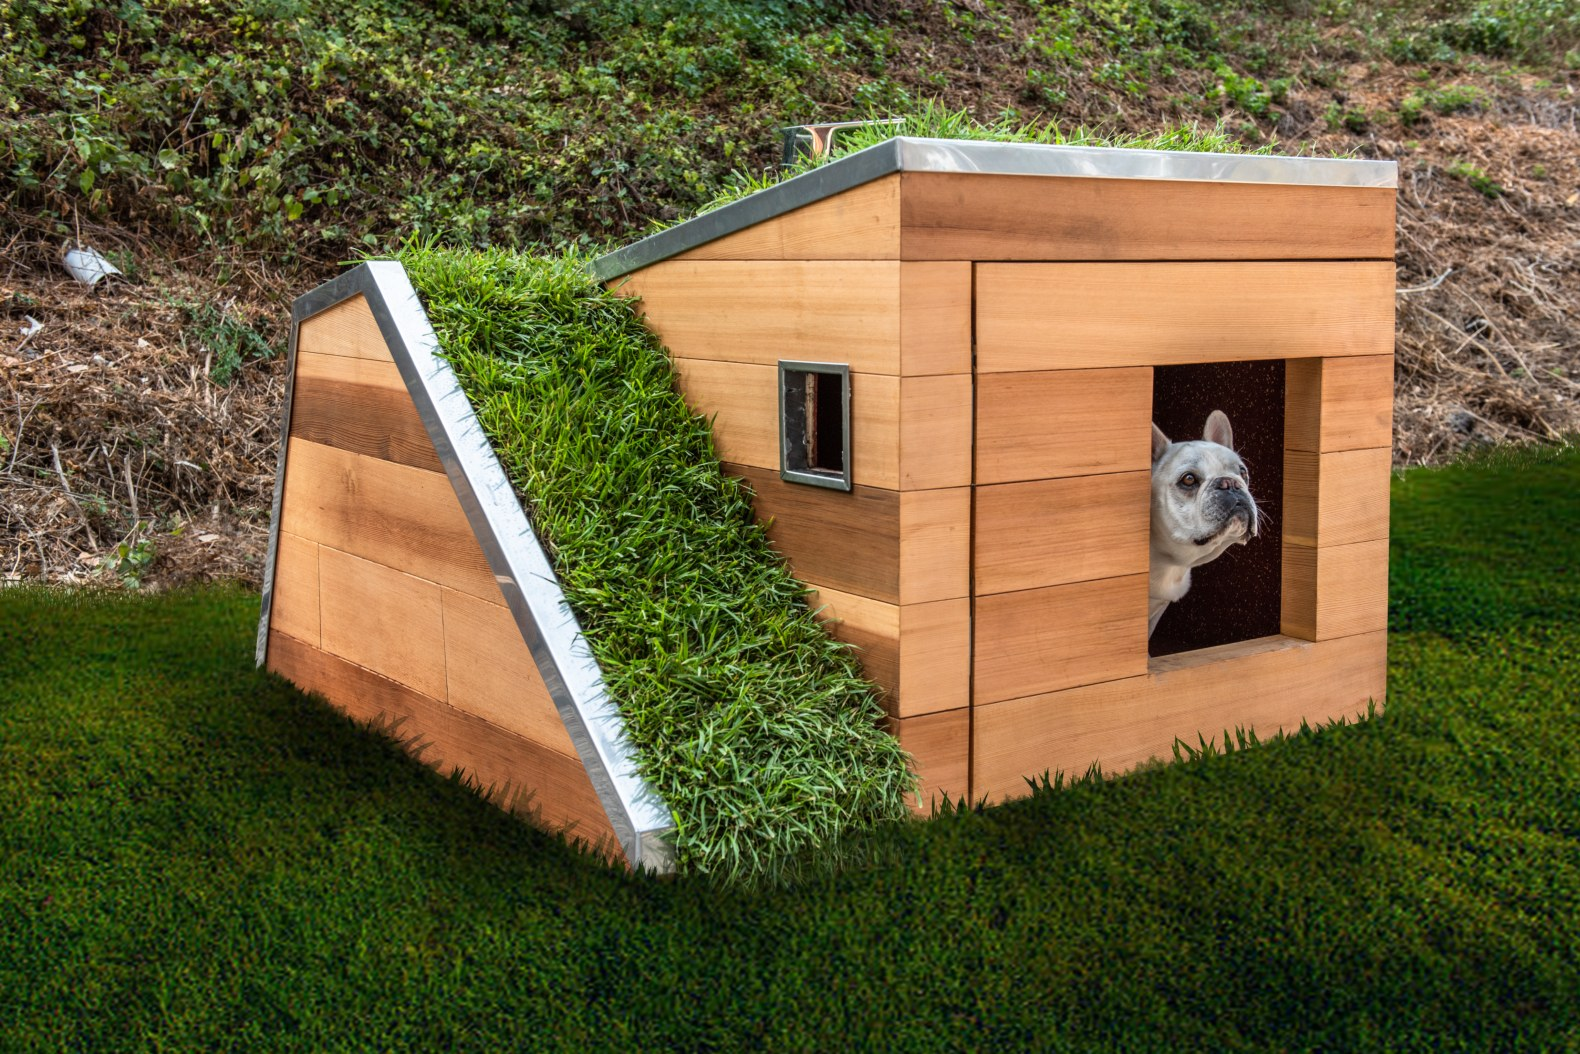 This sustainable dog house has a green roof and solar-powered fan to keep cool